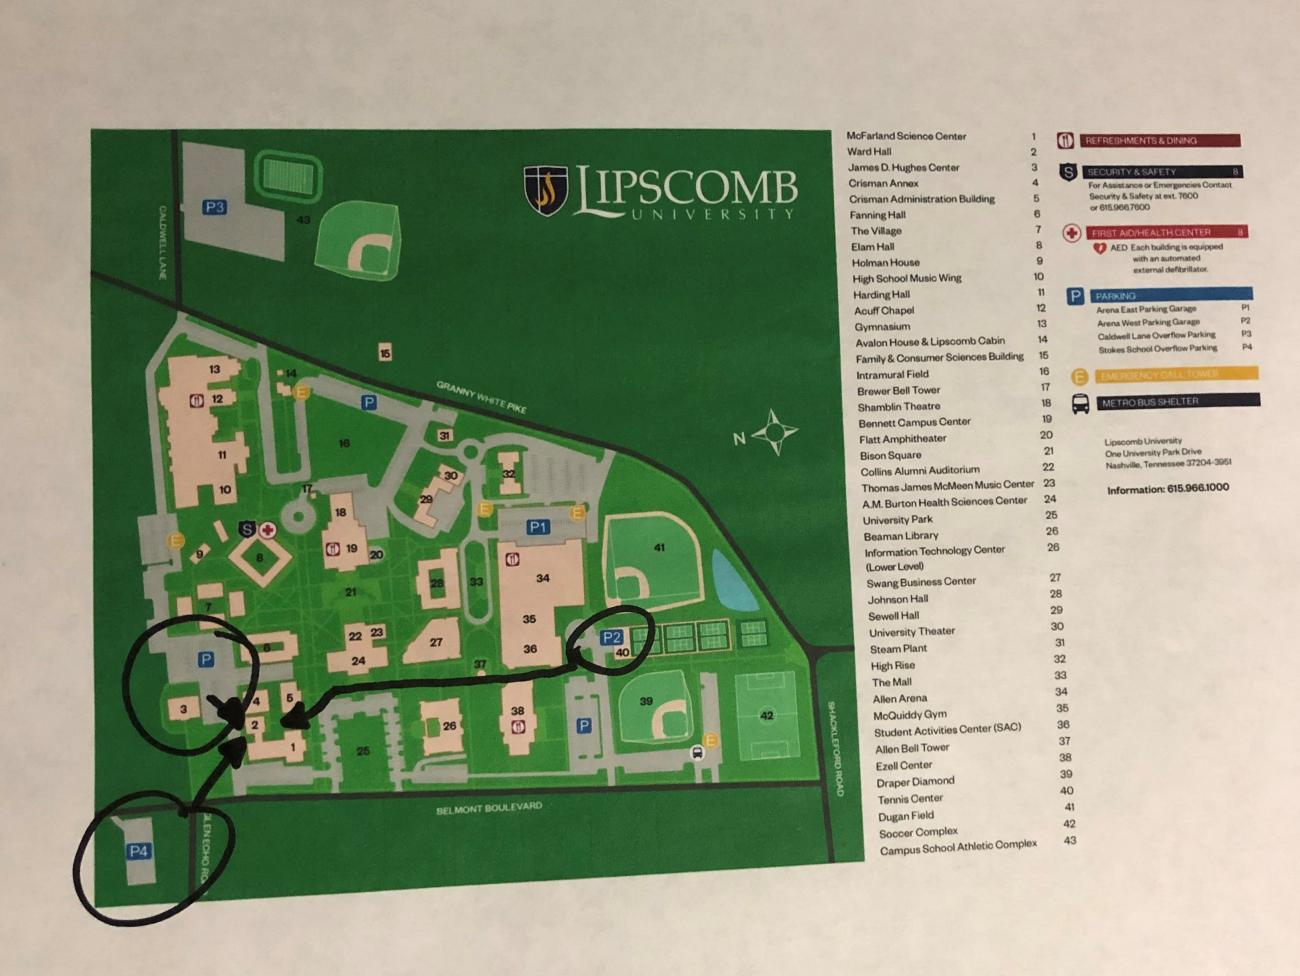 lipscomb university campus map Lipscomb University Campus Map Campus Map lipscomb university campus map